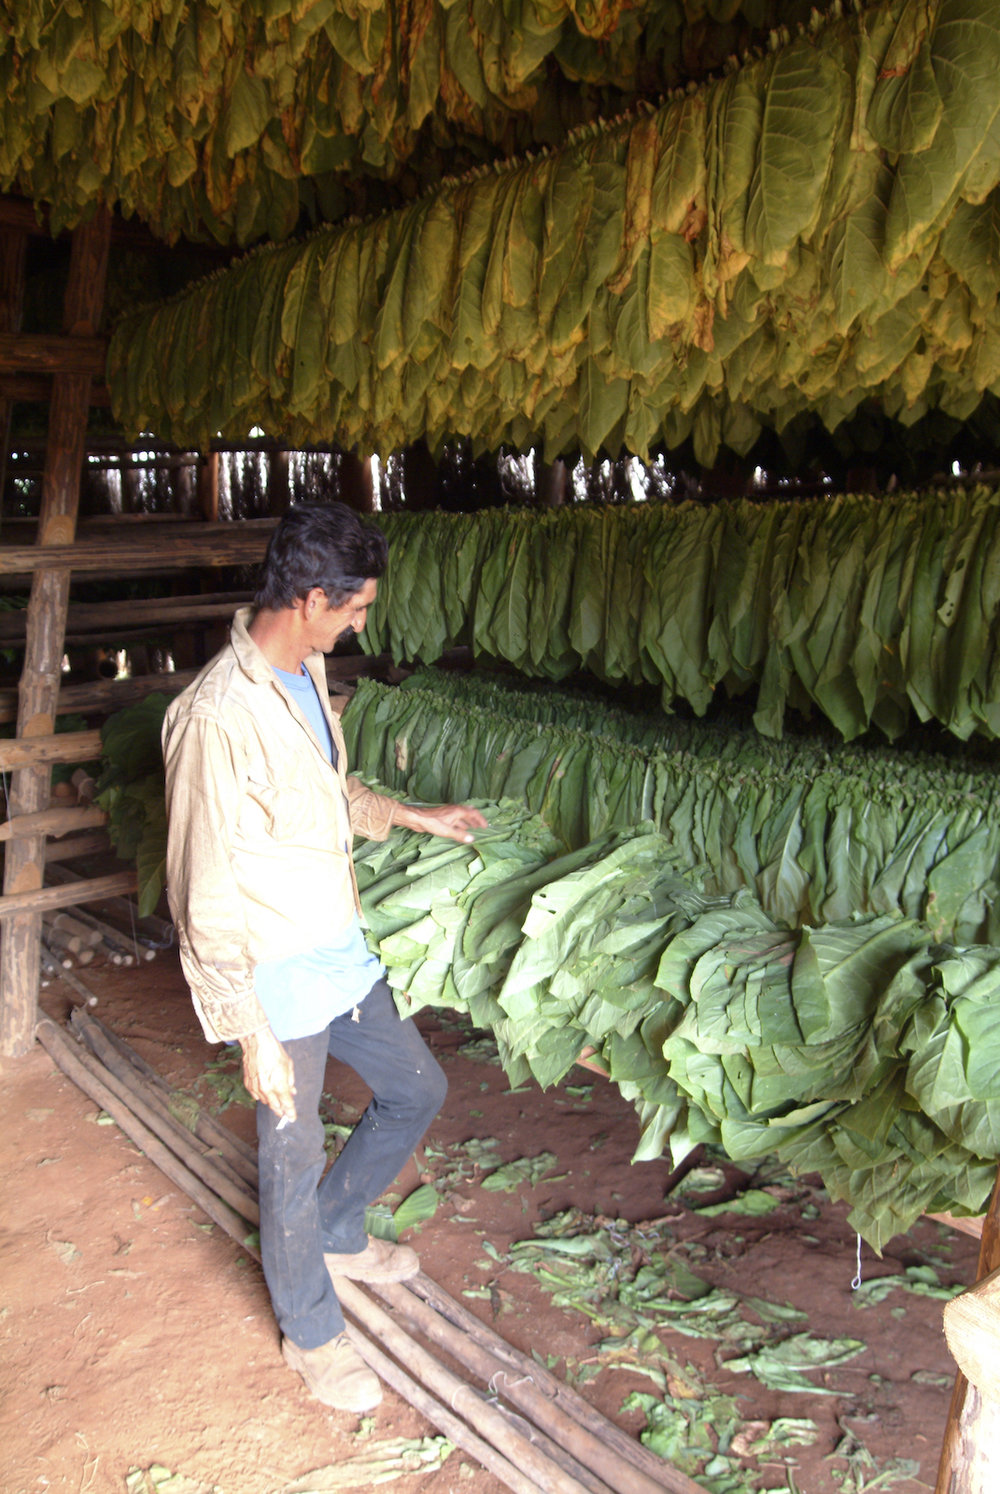 A tobacco farmer in Vinales, Cuba, shows his crop.  Image by New Orleans based travel photographer, Marc Pagani